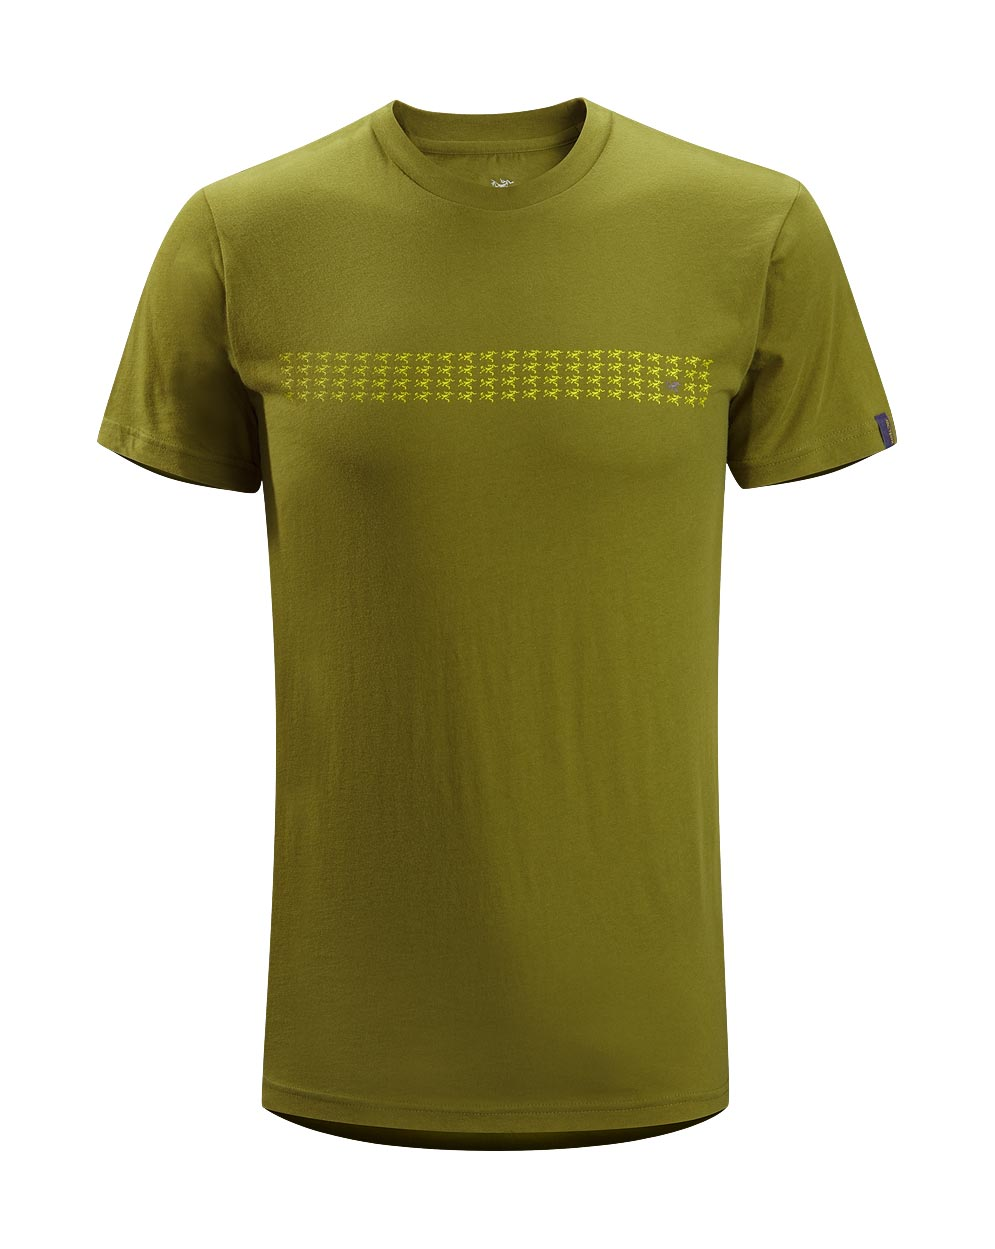 Arcteryx Reed Green One Bird T-Shirt - New